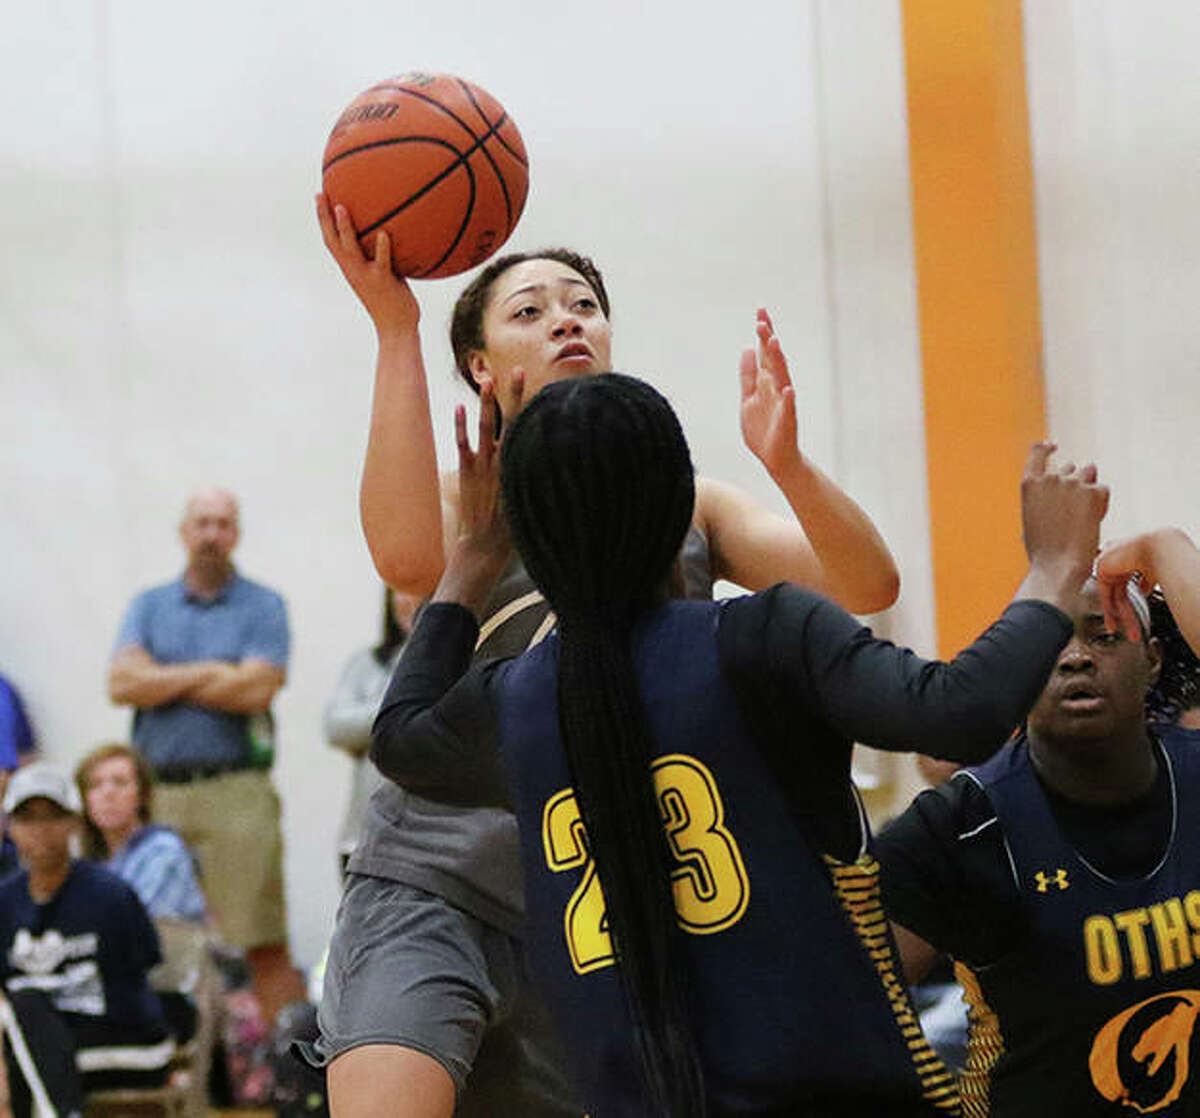 Marquette's Alyssa Powell puts up a shot against O'Fallon in a summer game at Edwardsville. Powell, who earned All-MVC honors playing for Triad last season, has transferred to Marquette for her senior year.